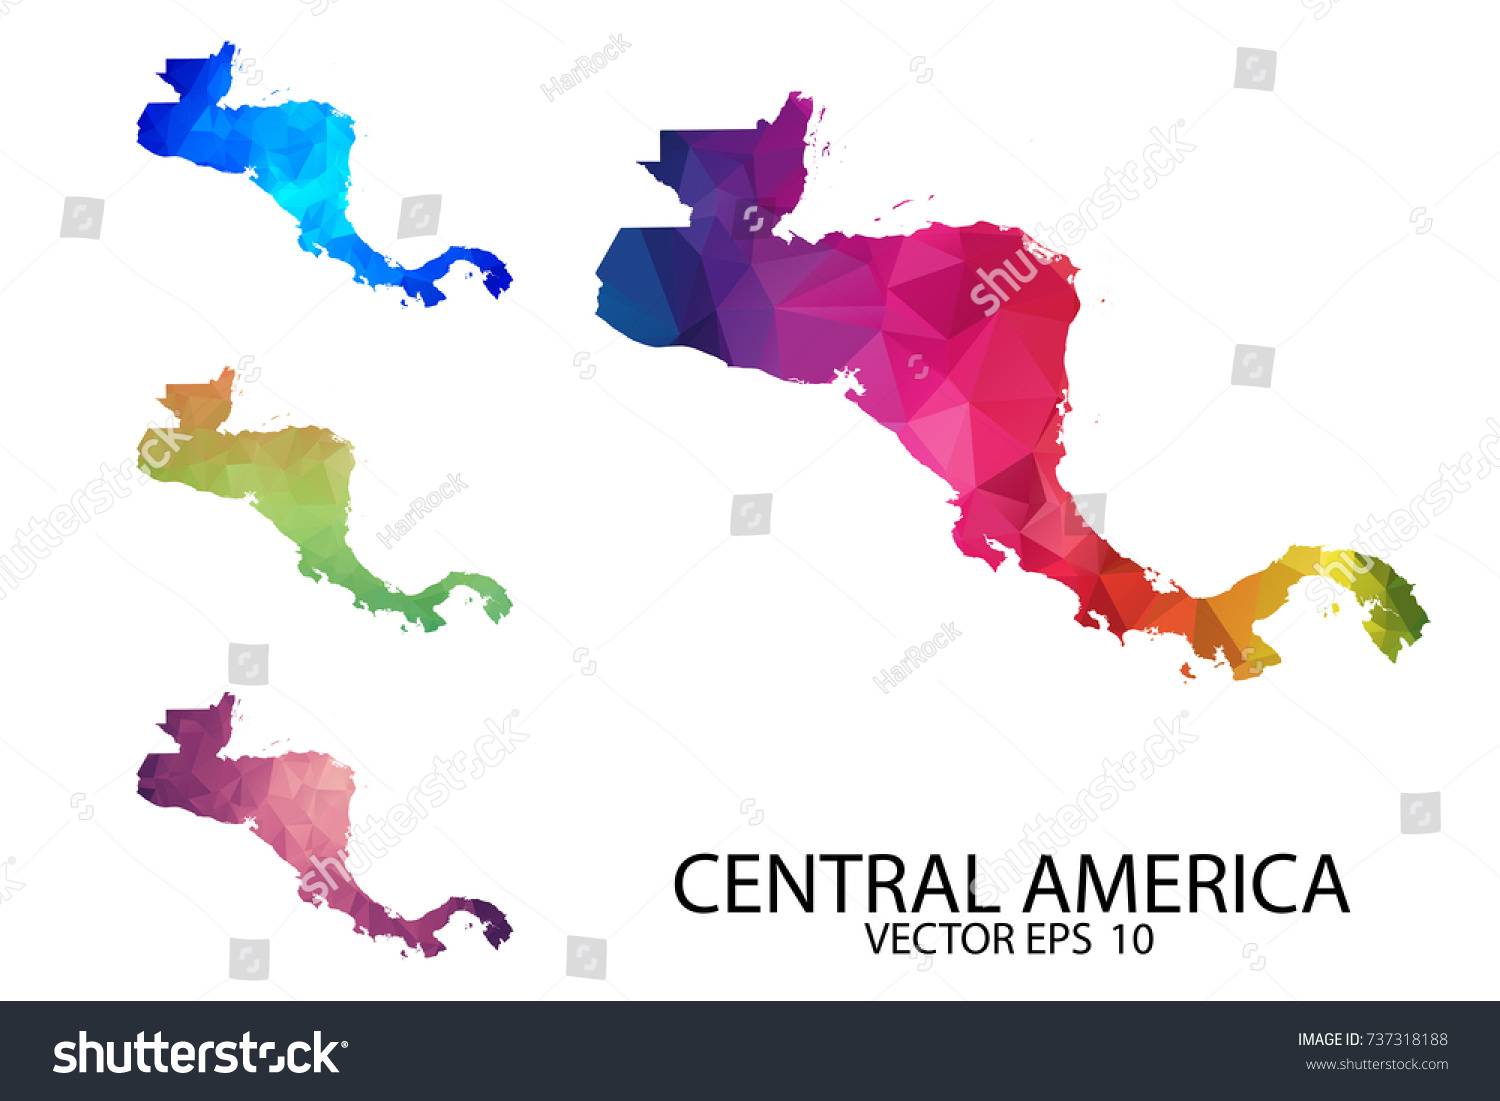 Set Of Polygonal Map Blank On White Background   Central America Map Of  Isolated. Vector